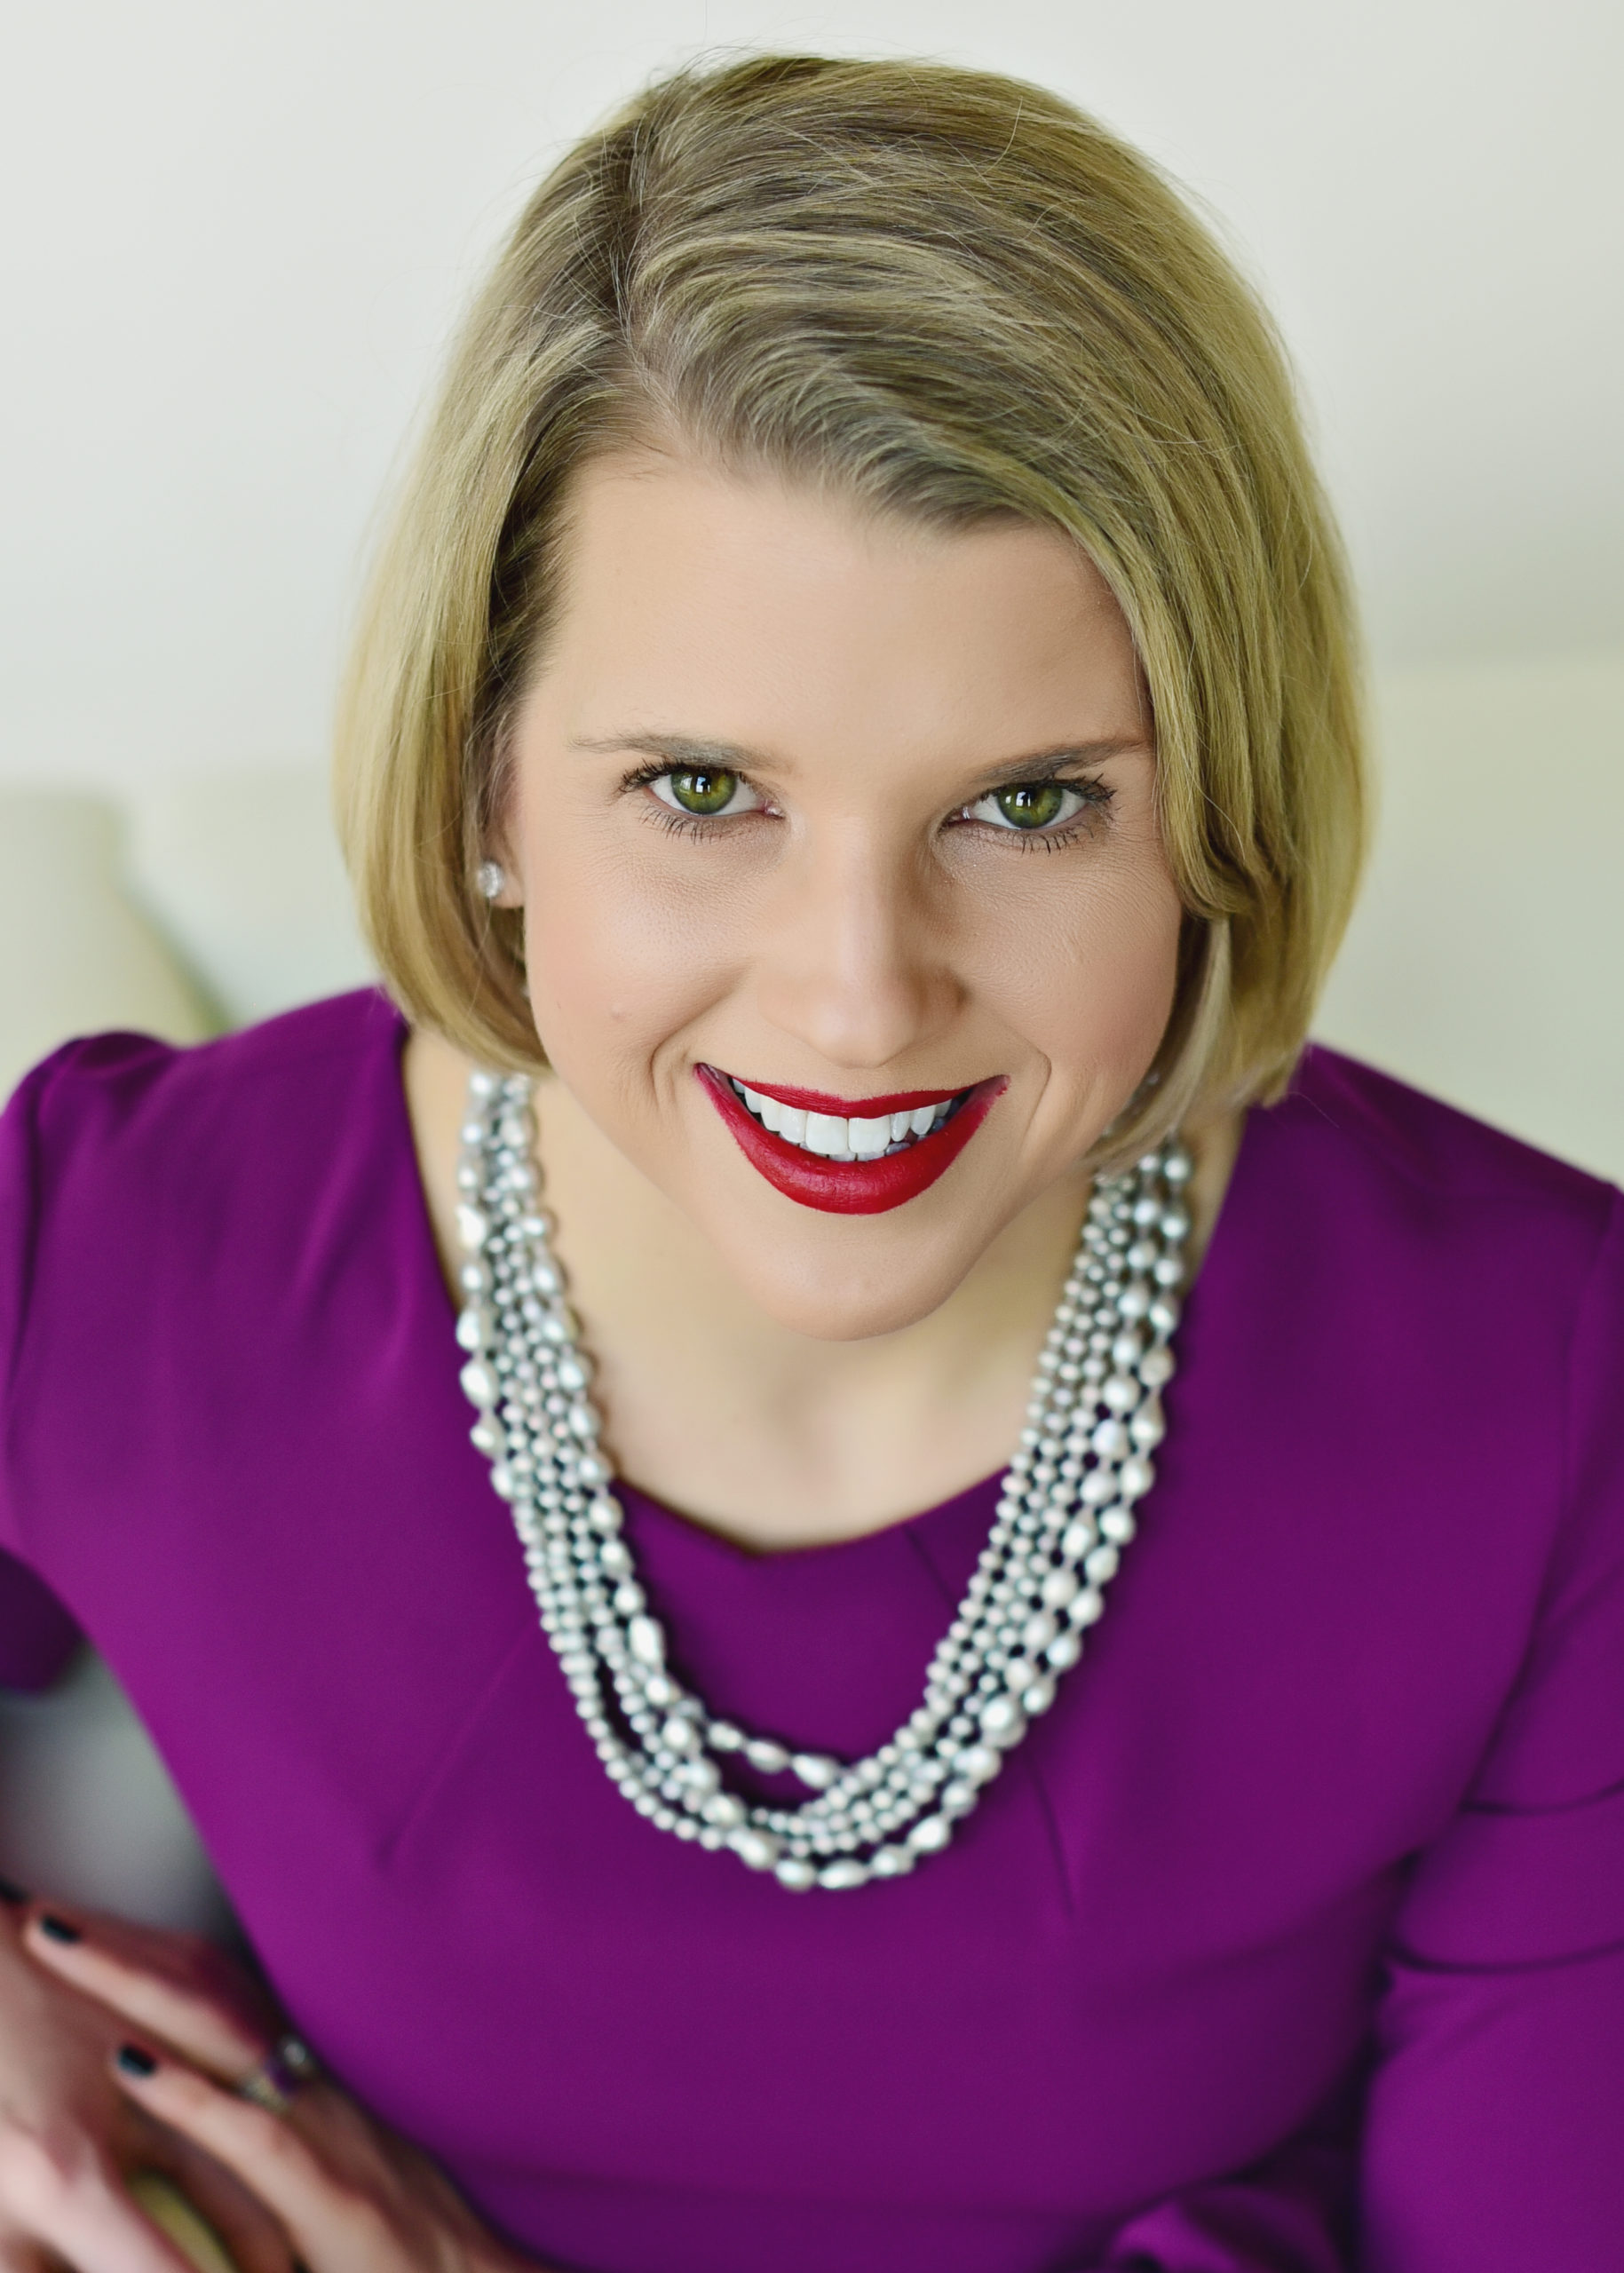 Oral Hygiene Recommendations in the Age of Pinterest & Dr. Google- Mia L. Geisinger, DDS, MS